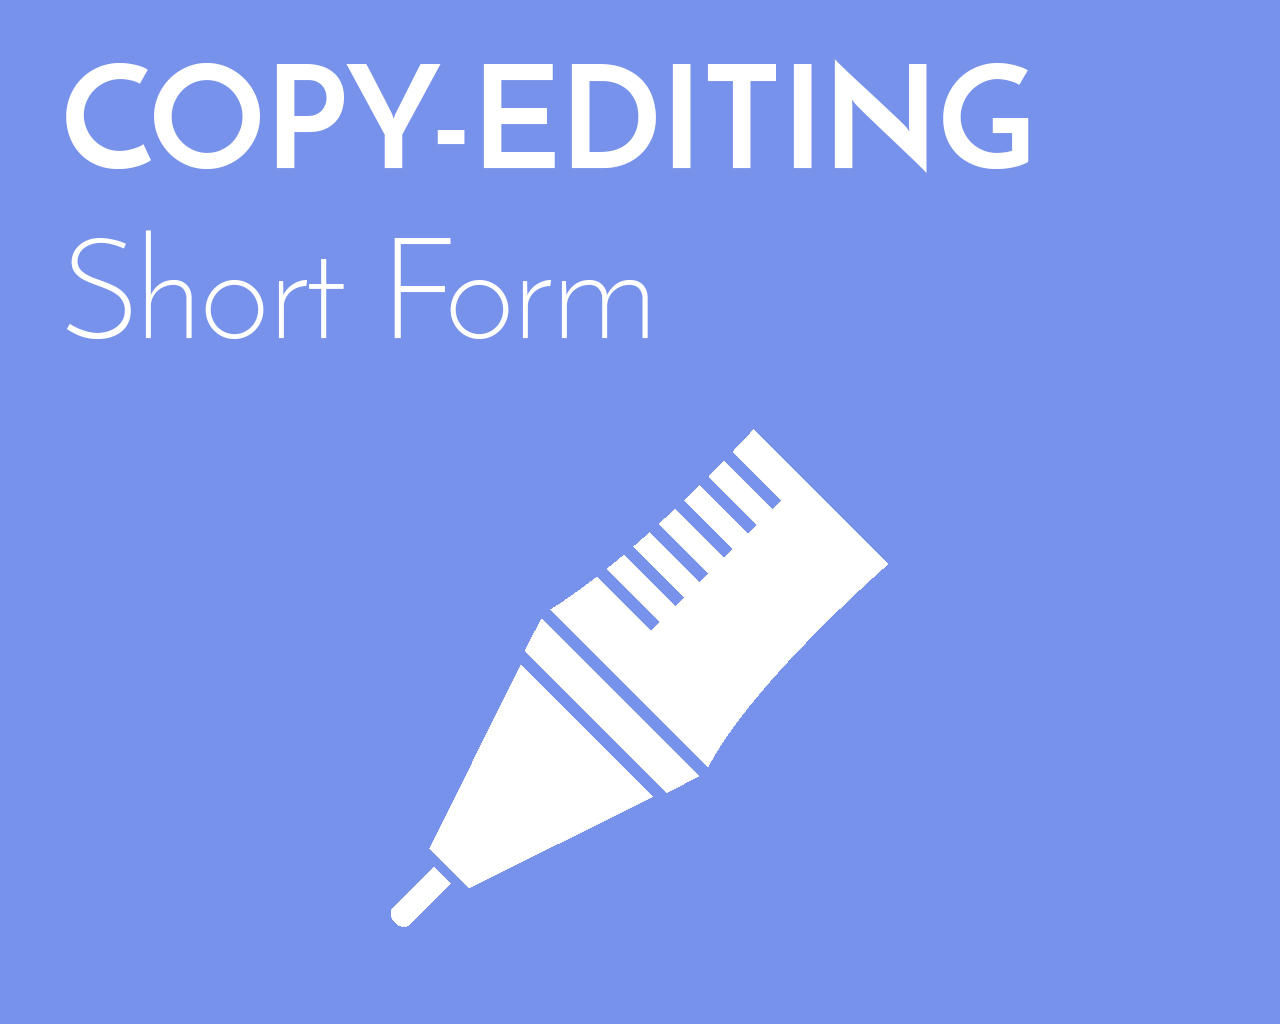 Professional Copy-Editing (Short Form) by emilyshore - 73462